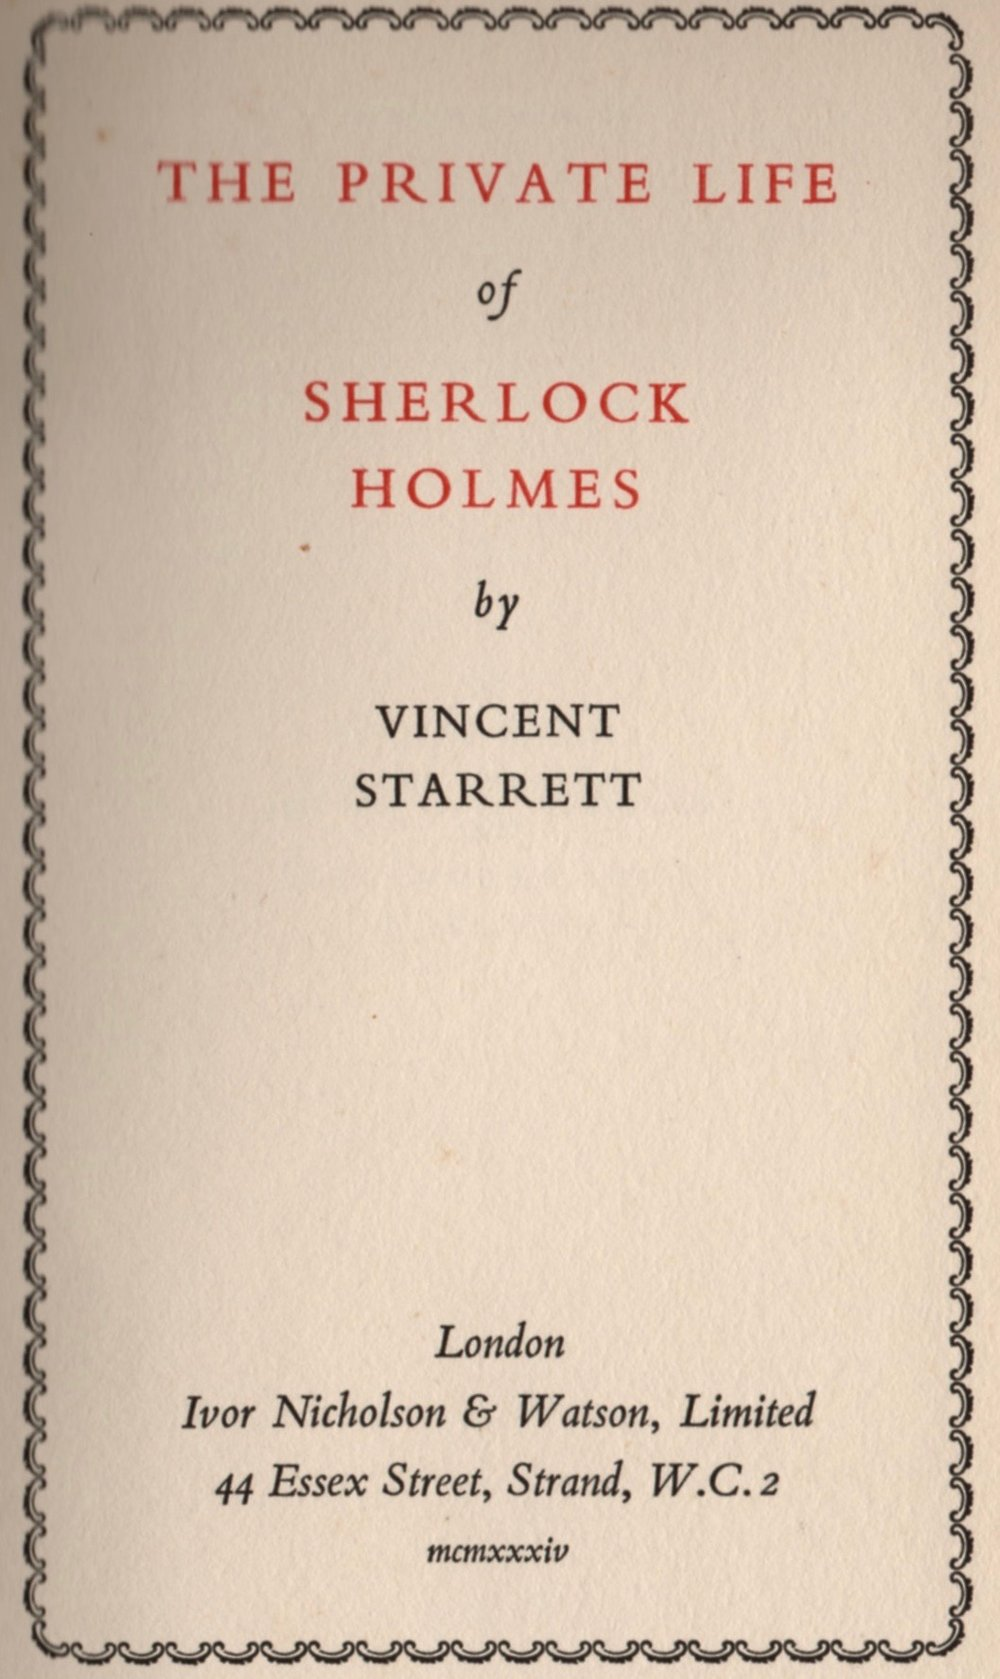 Title page of the first British edition.